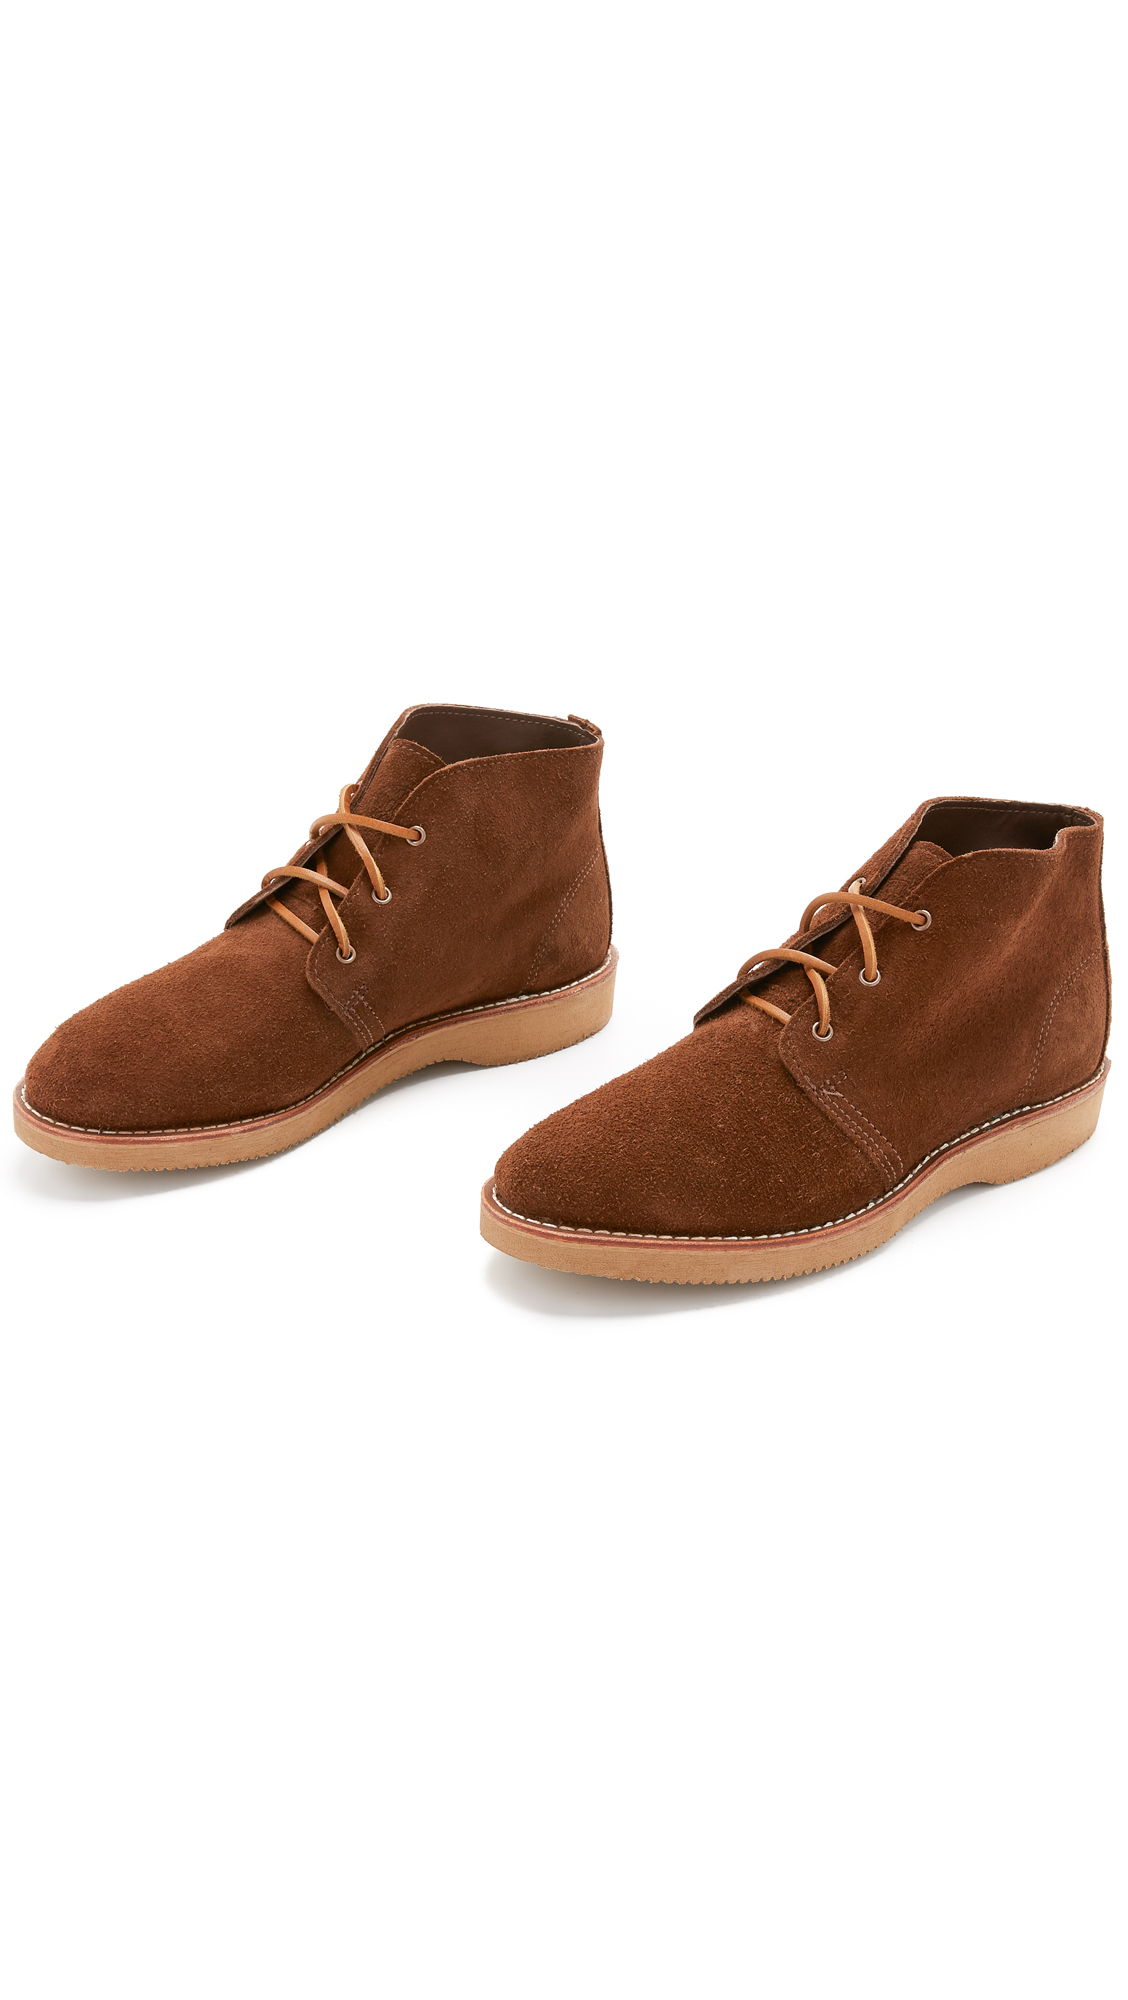 fe5ae36c5ef Wolverine 1000 Mile Palmer Suede Chukka Boots